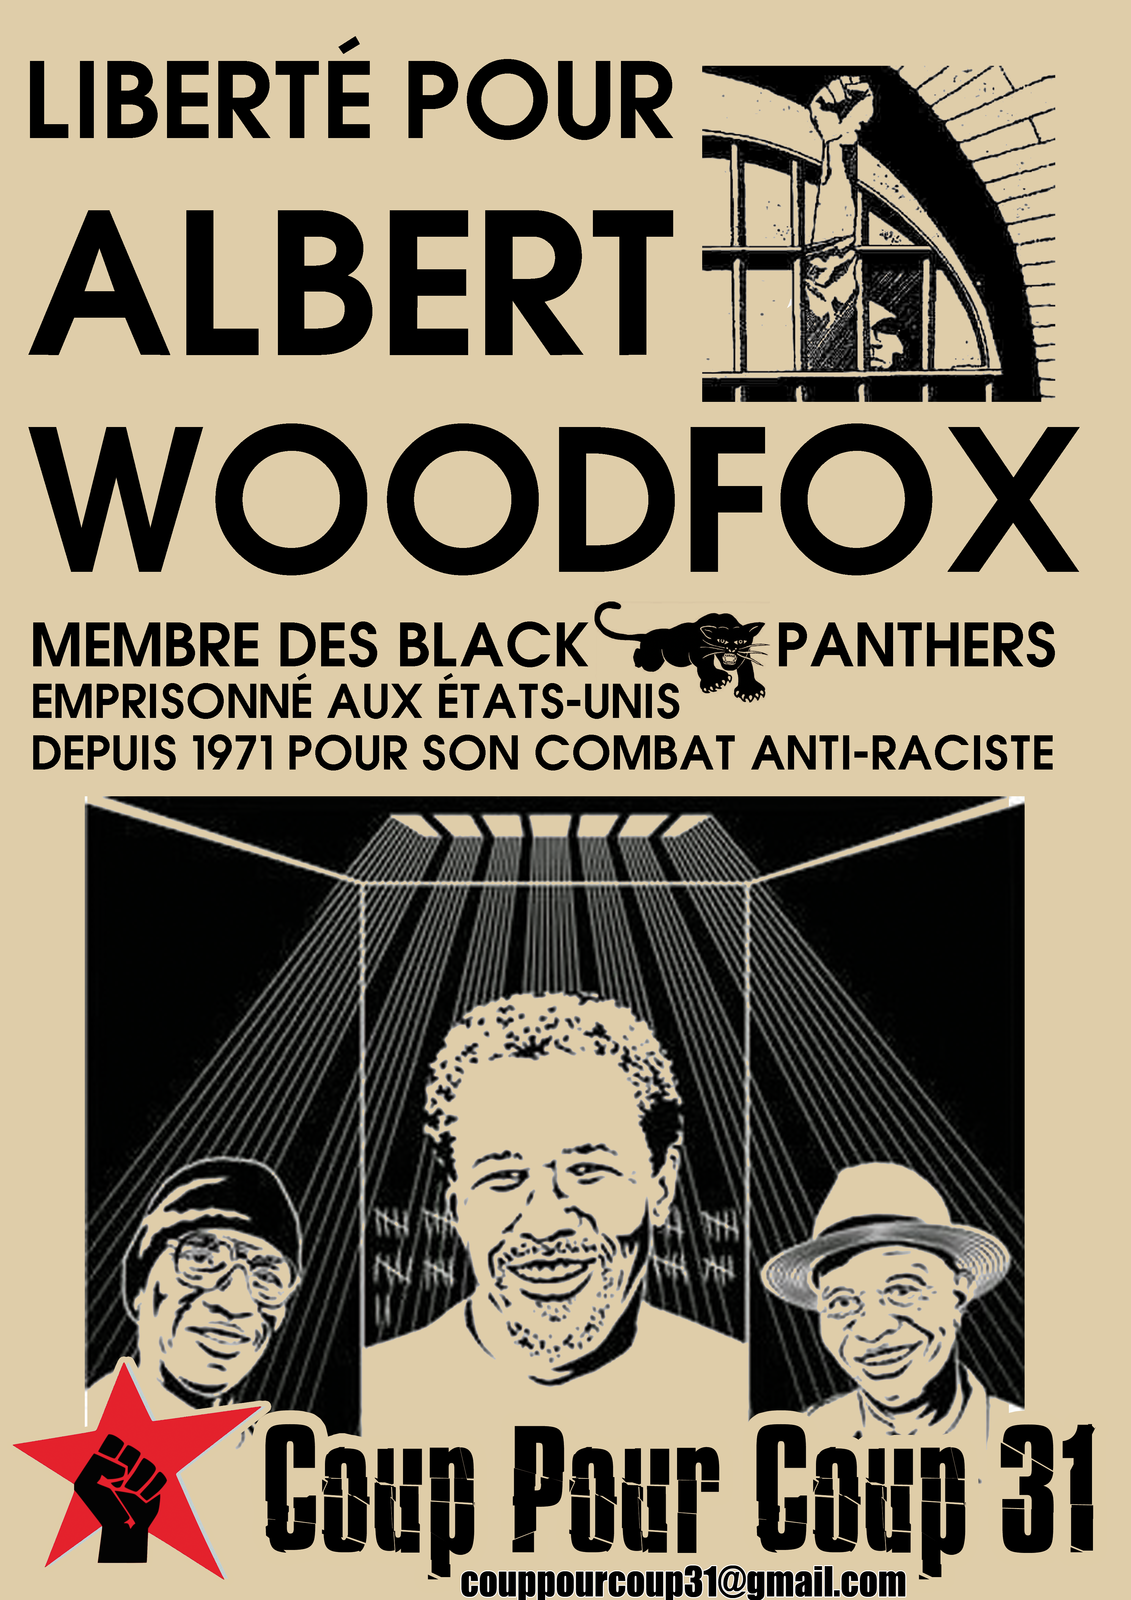 Liberation campaign for Albert Woodfox